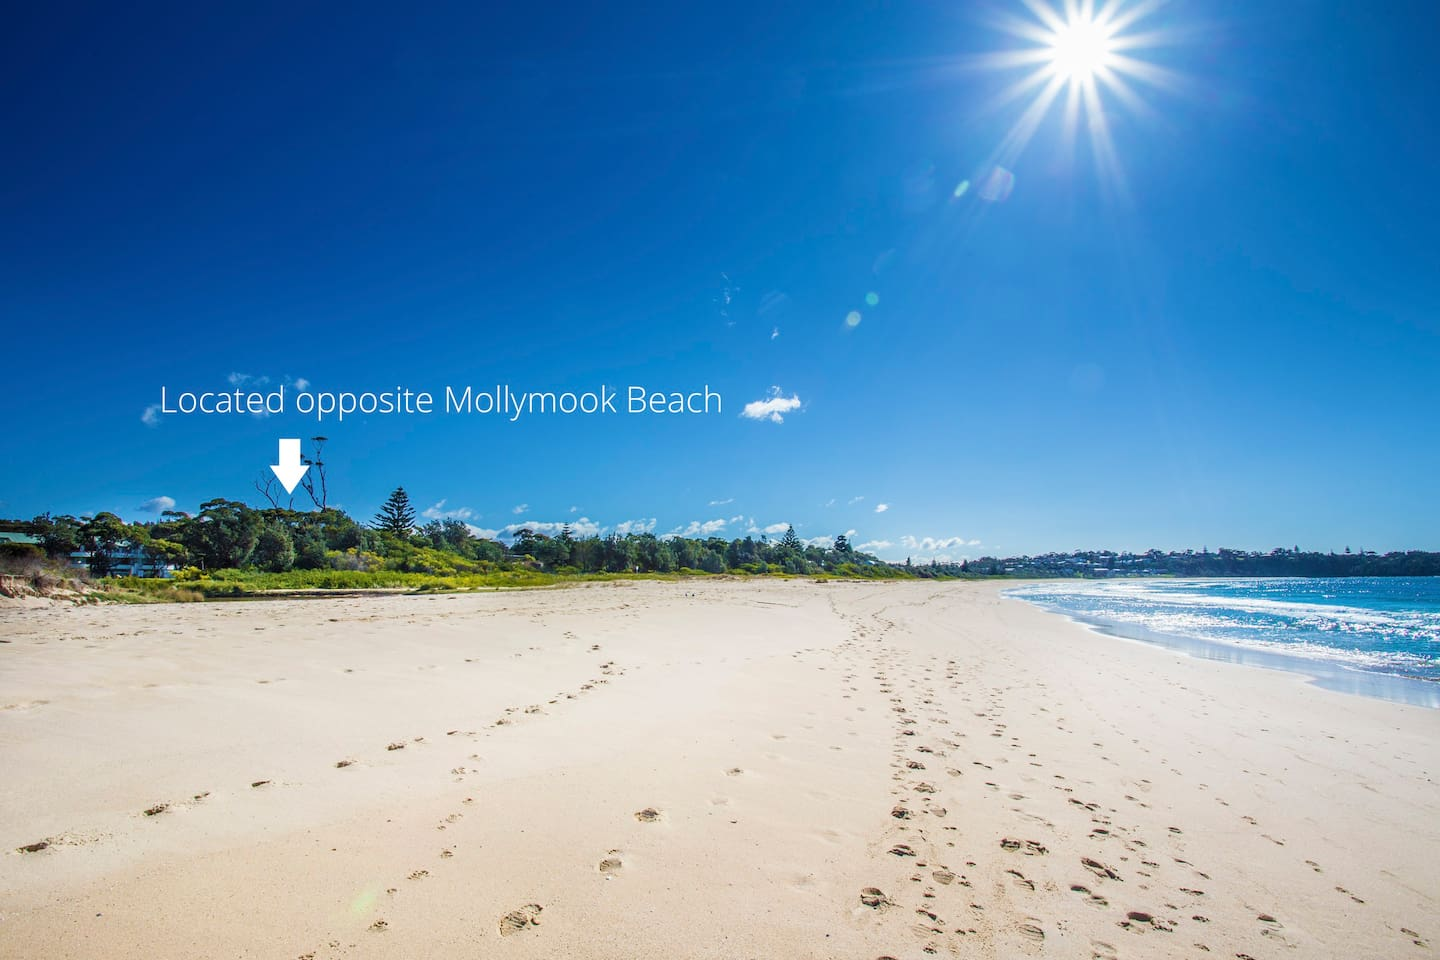 Unit is located across the road from Beautiful Mollymook Beach